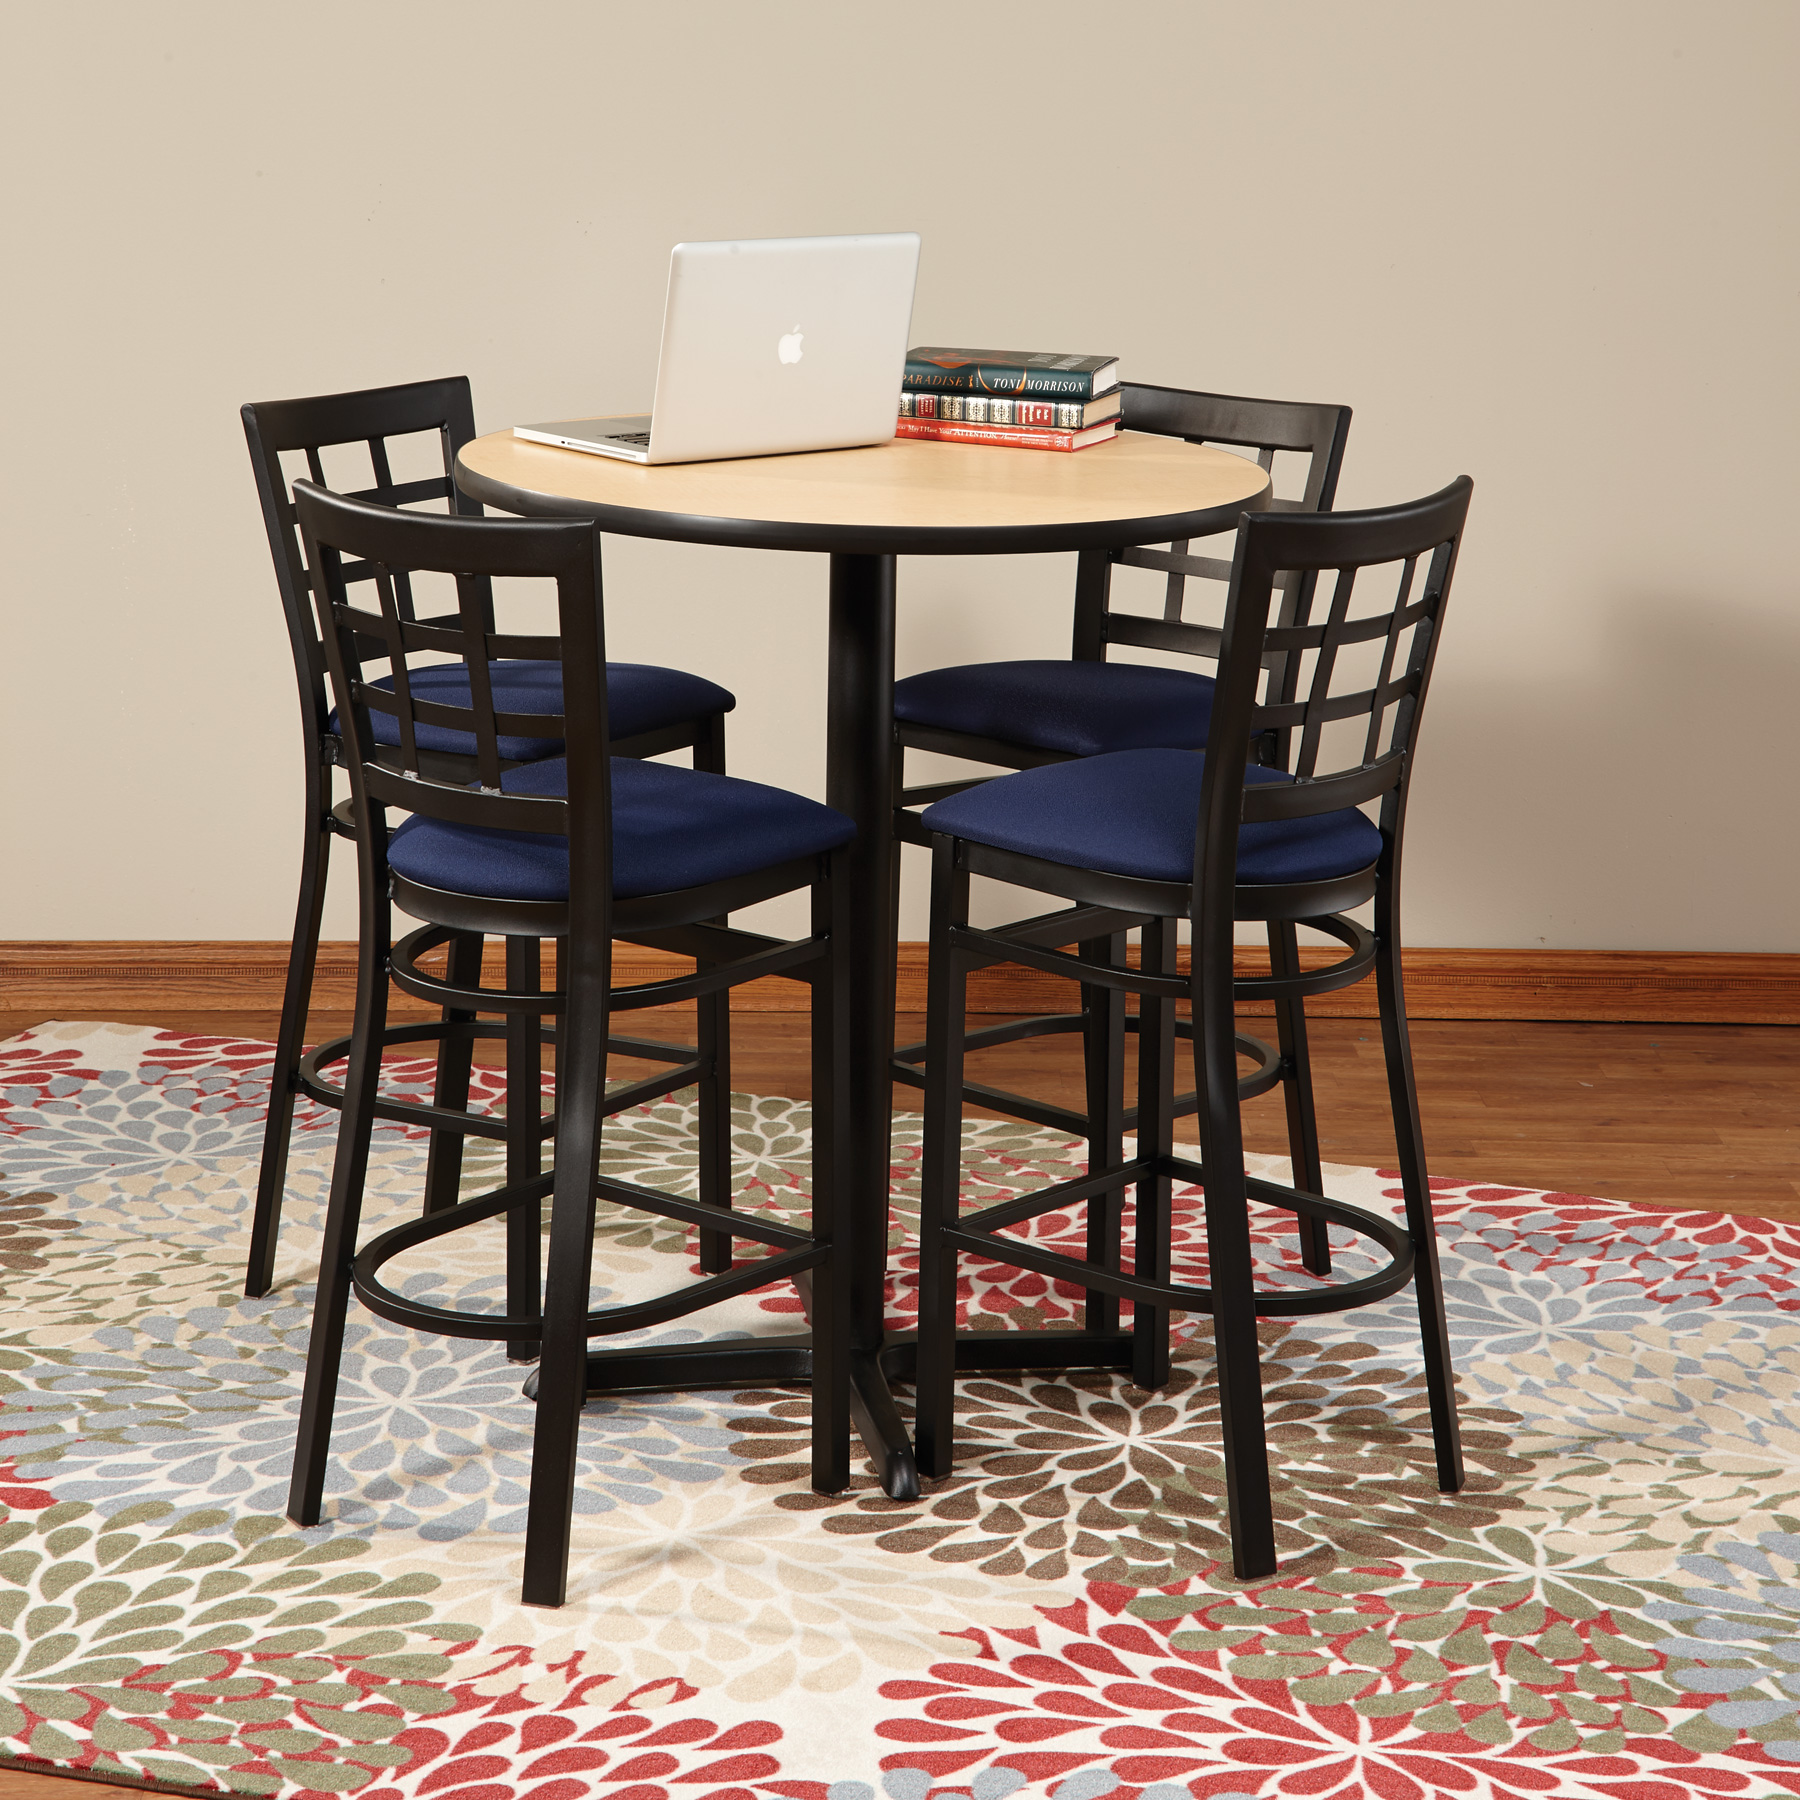 Premier Café Height Tables and Chairs Make Your Library Spaces Multifunctional